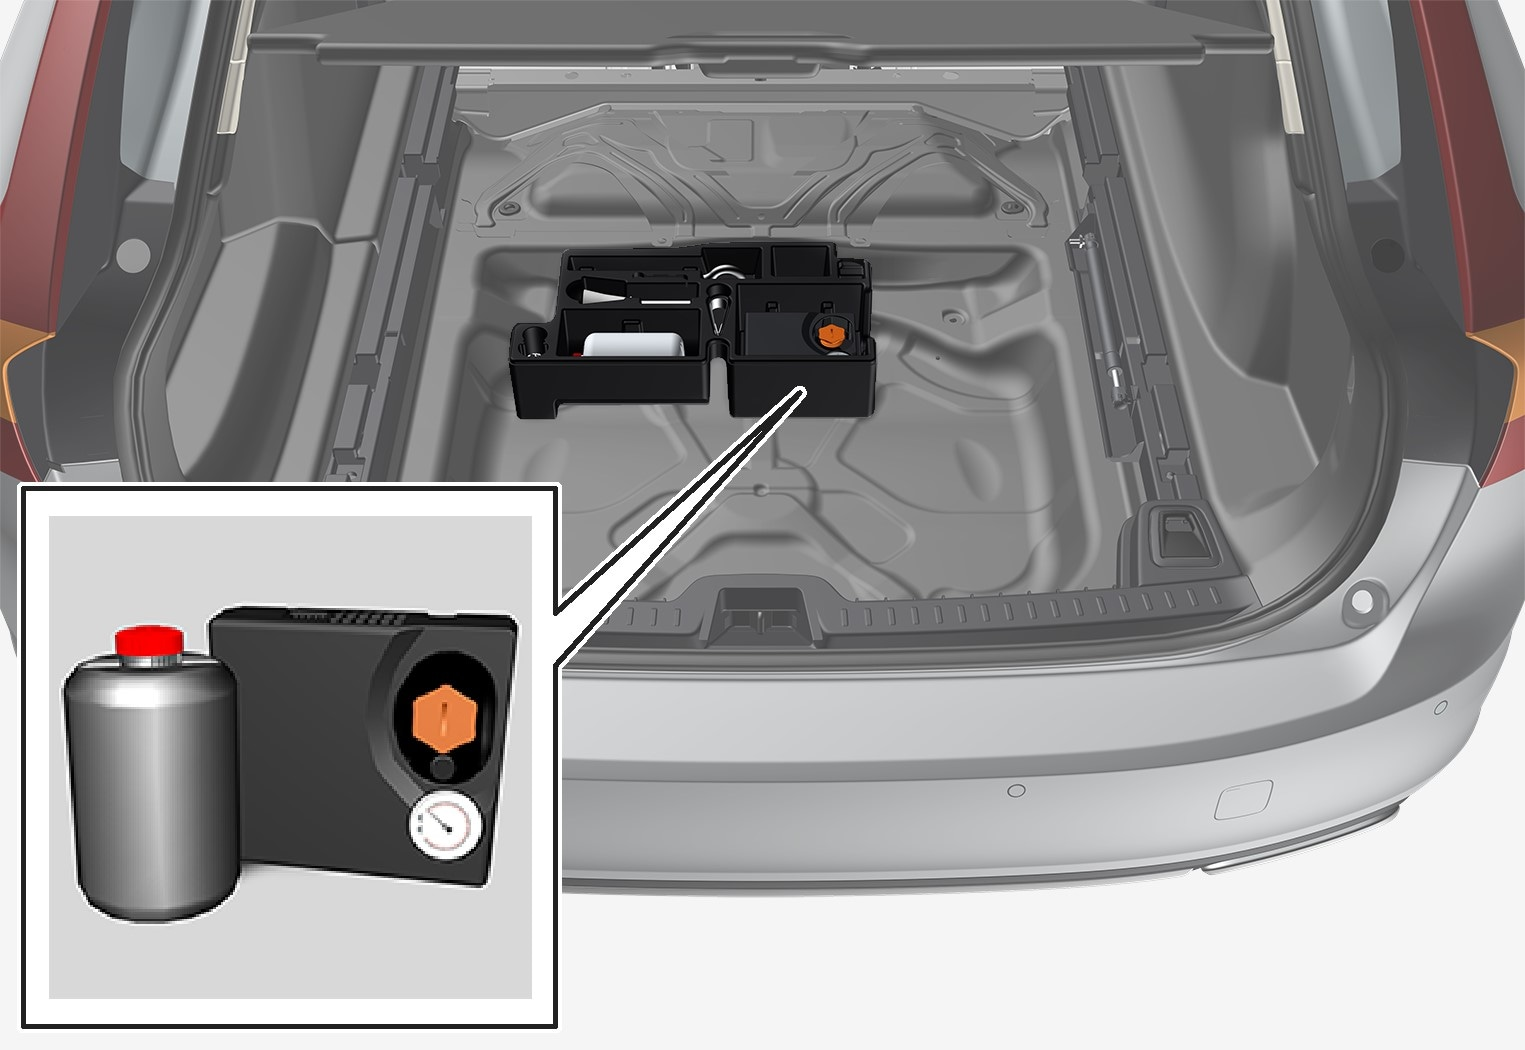 P5-1617-V90-temporary mobility kit storage